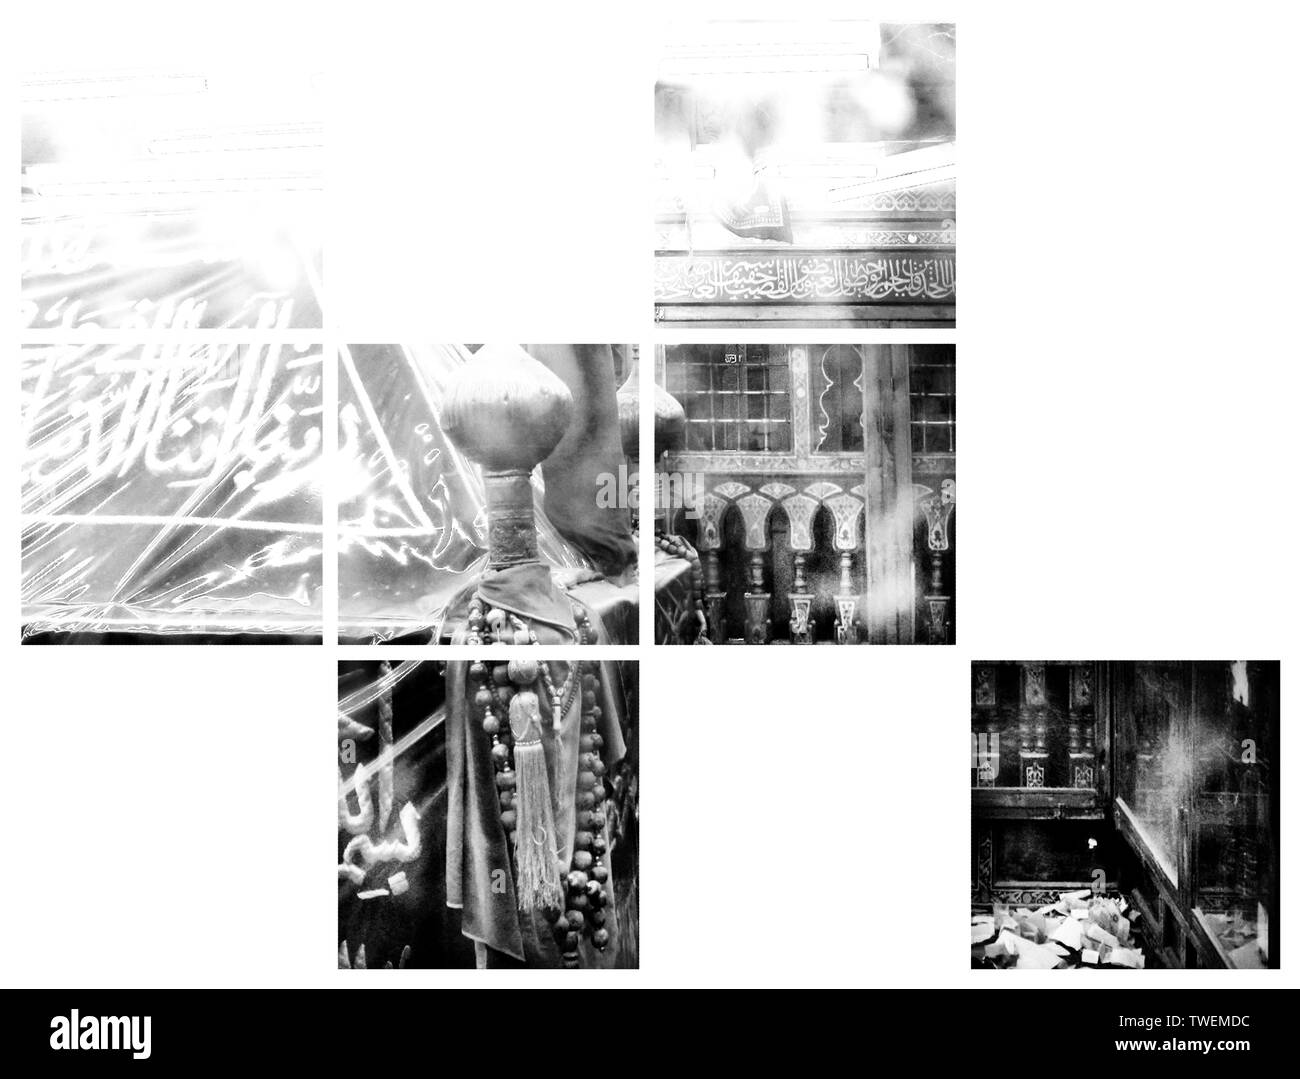 Installation of photographs by photographer Eddie Gerald depicting Imam Muhammad al Shafi'i mausoleum who was a Muslim theologian founder of Usul al-Fiqh Islamic study located in Cairo Egypt - Stock Image